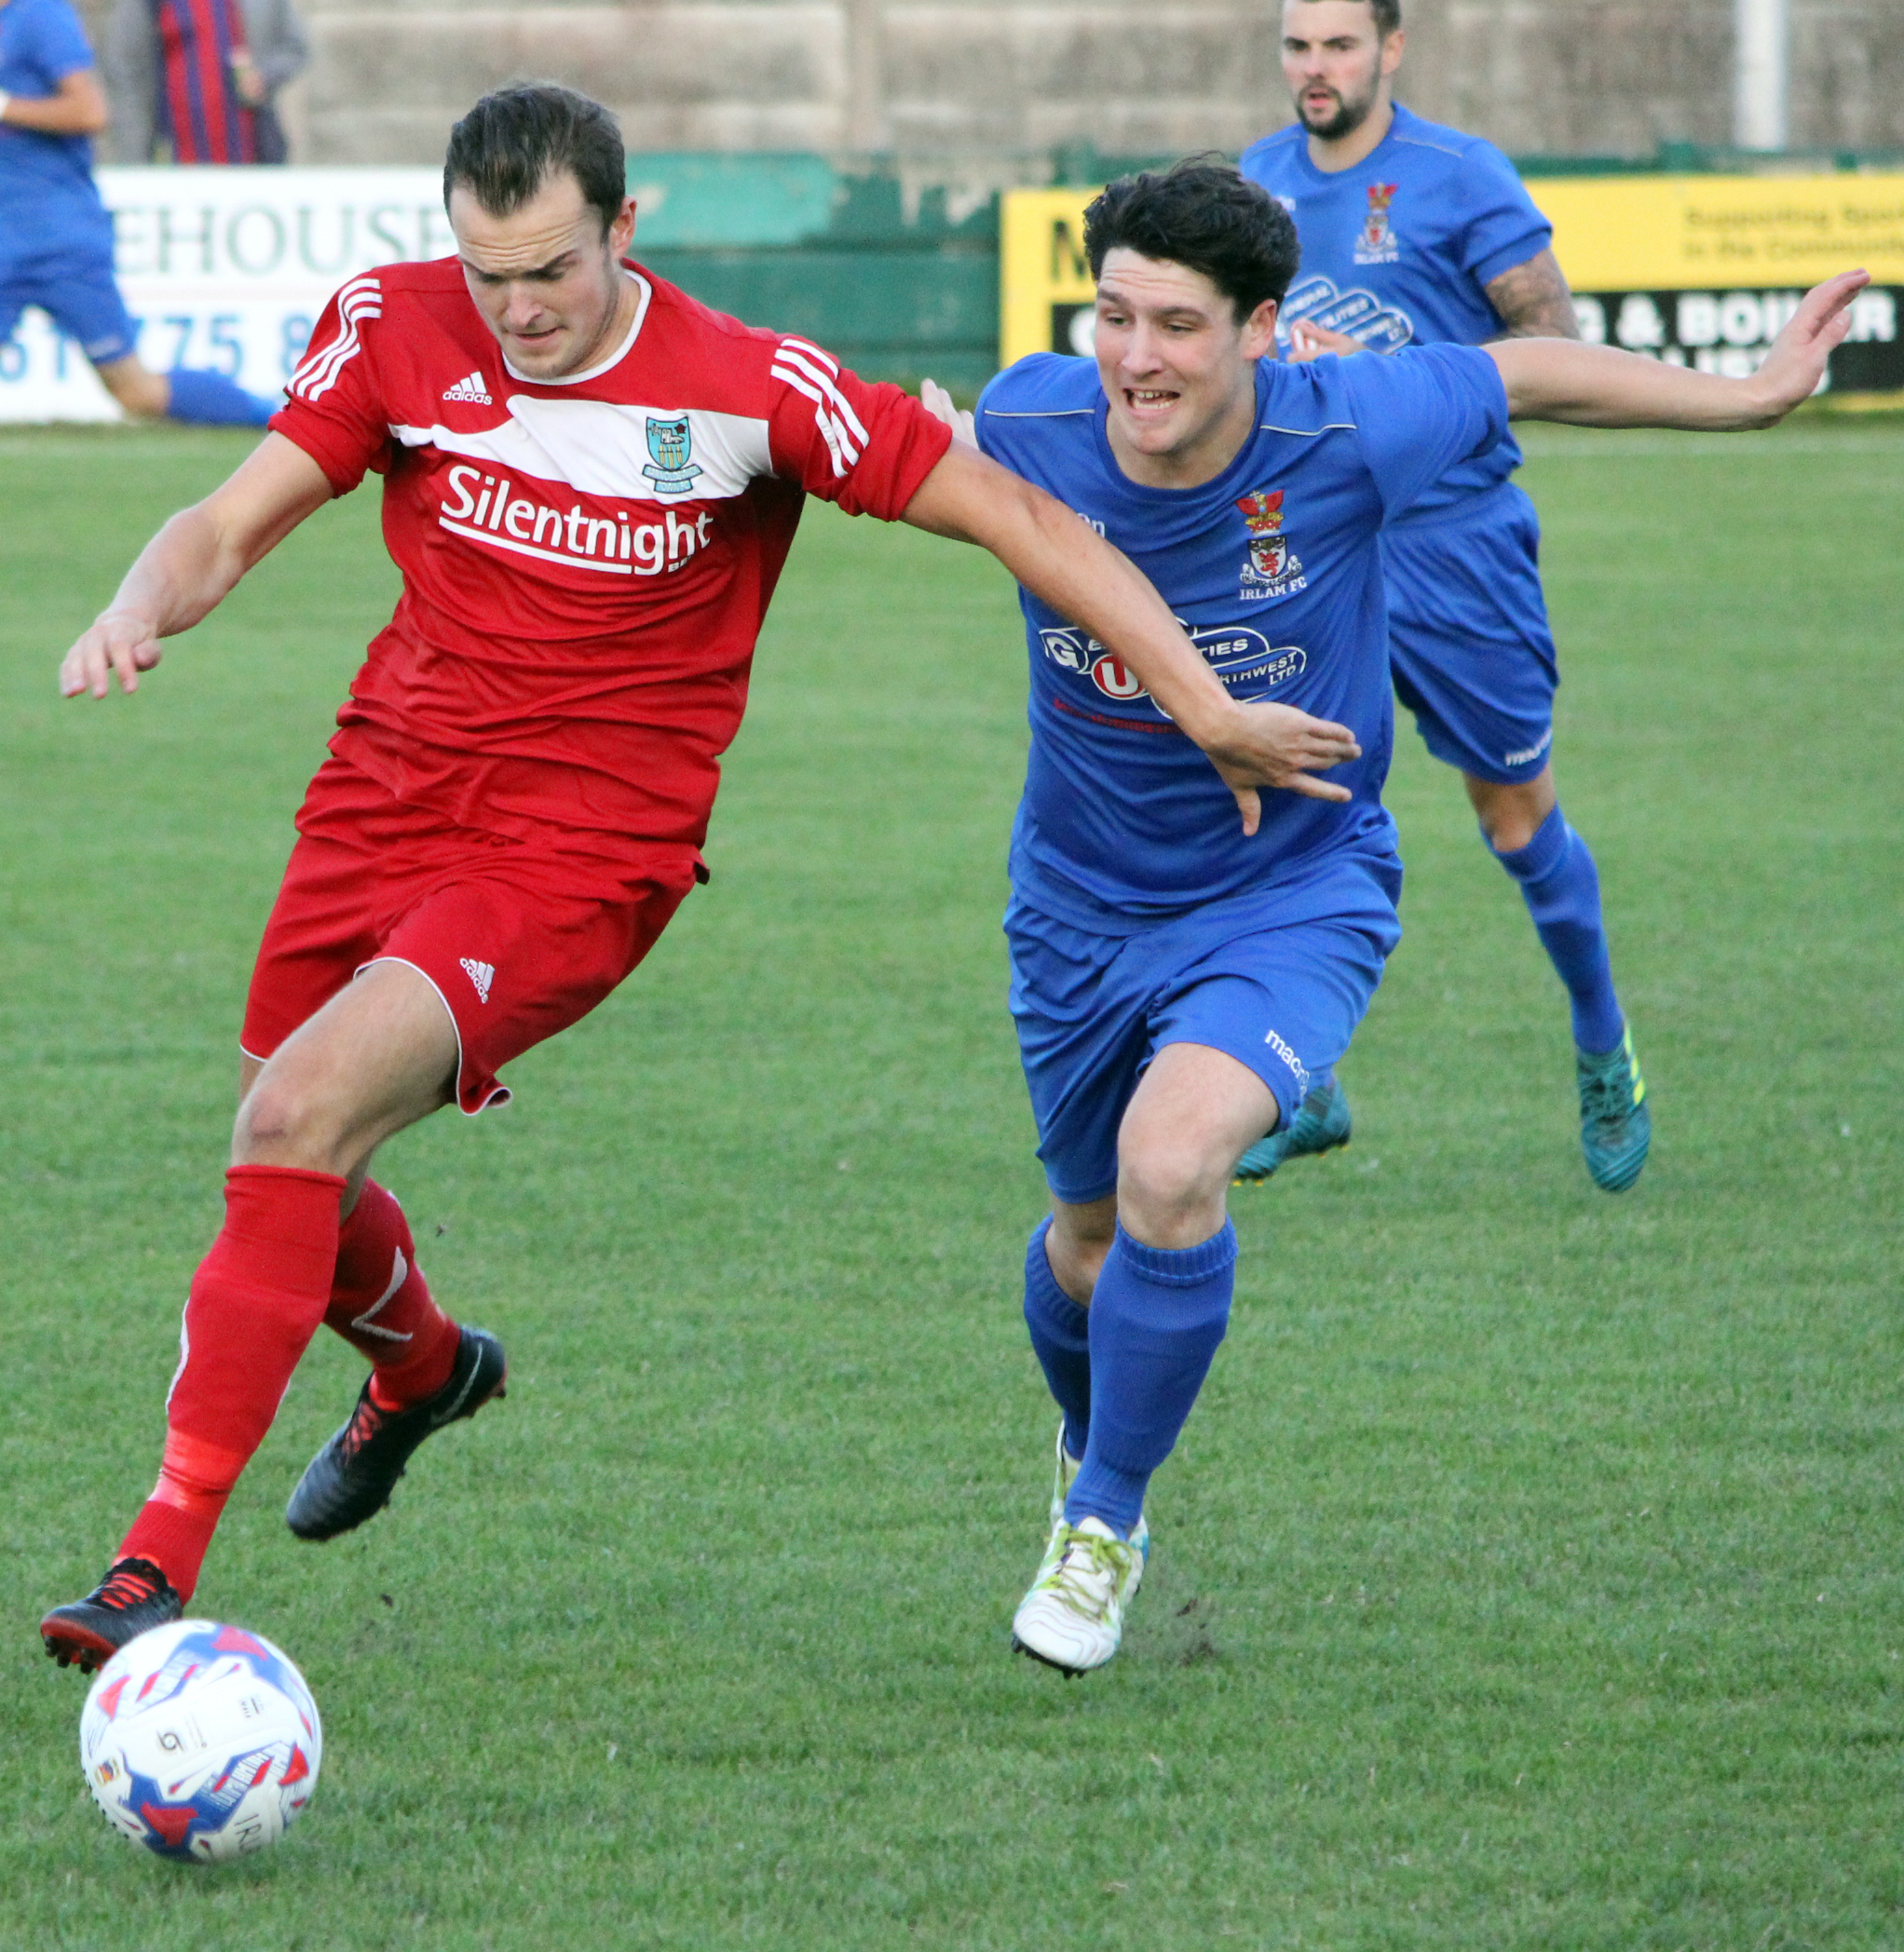 Barnoldswick Town's Andrew Hill, left, scored one goal and set up another at Abbey Hey. Picture: Peter Naylor